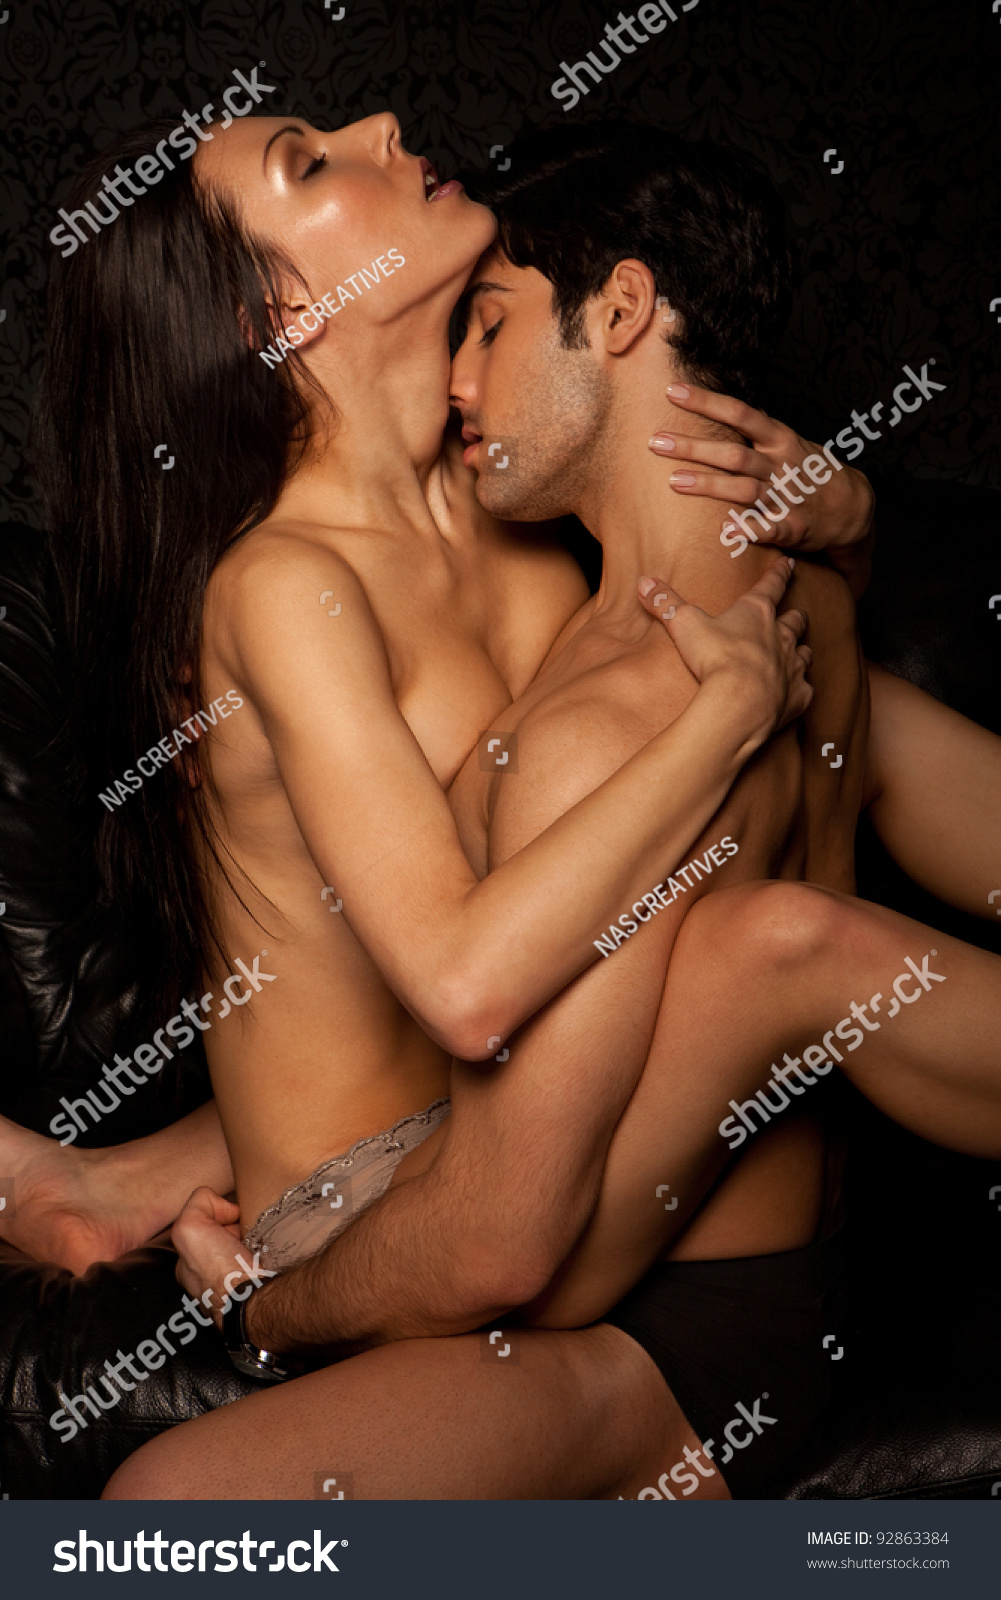 Couples Having Sex Free 23